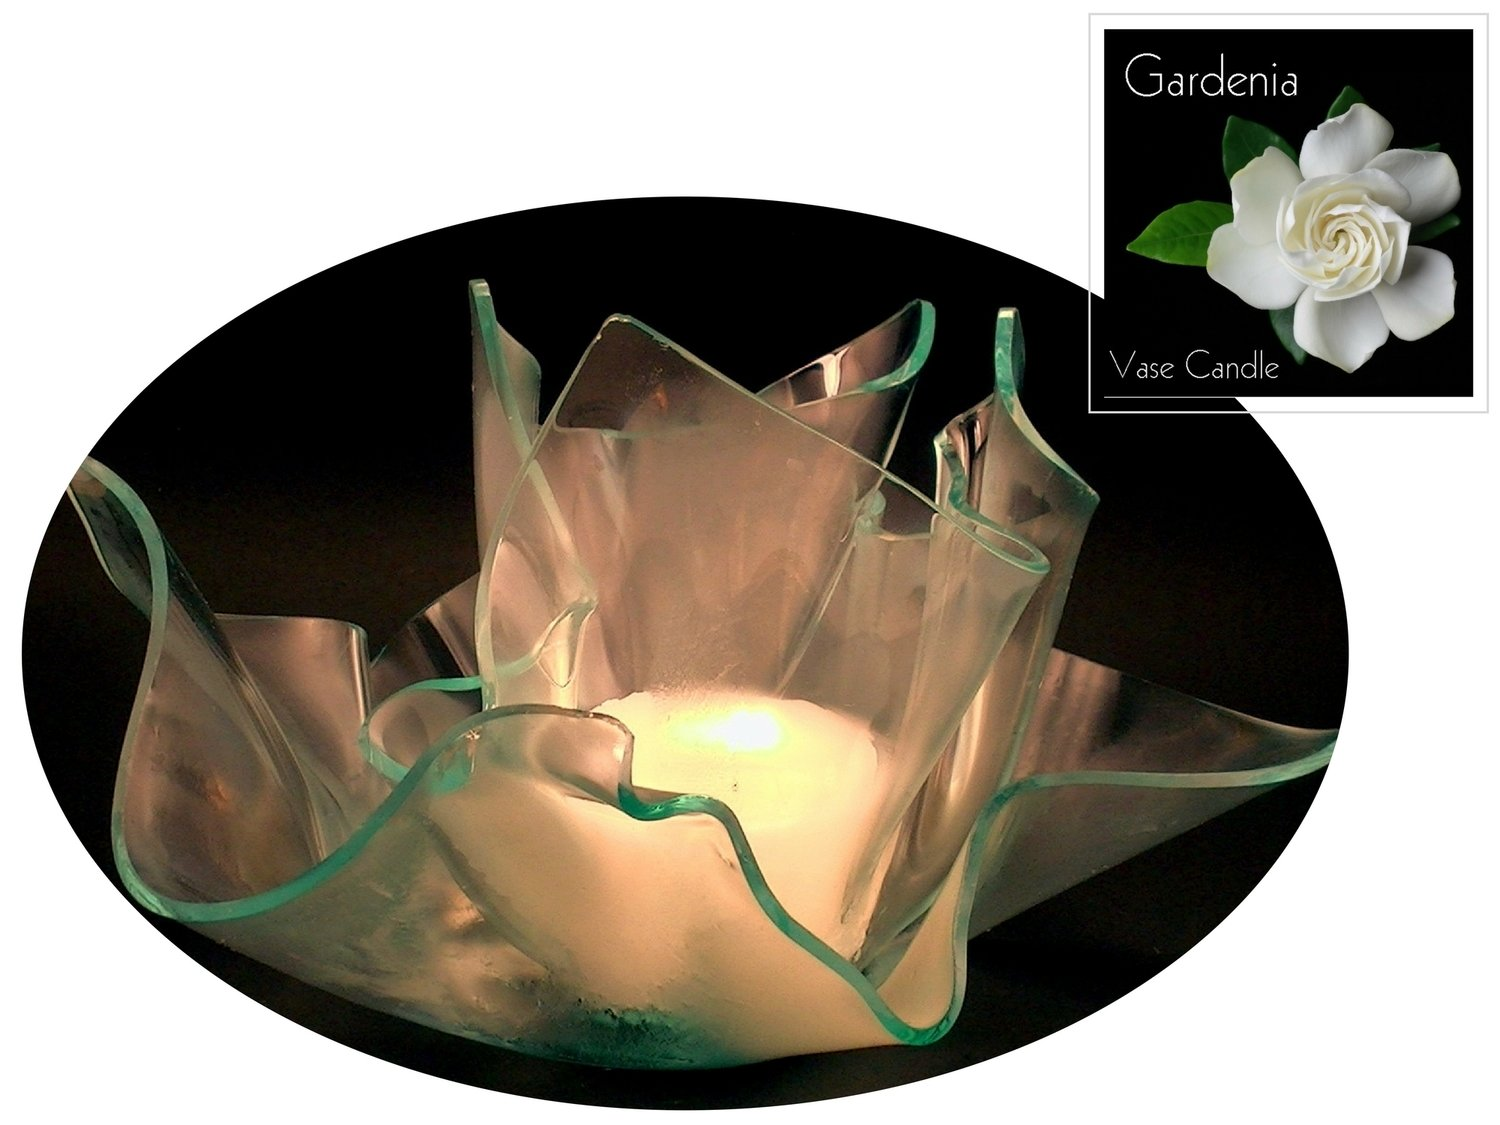 2 Gardenia Candle Refills | Clear Satin Vase & Dish Set